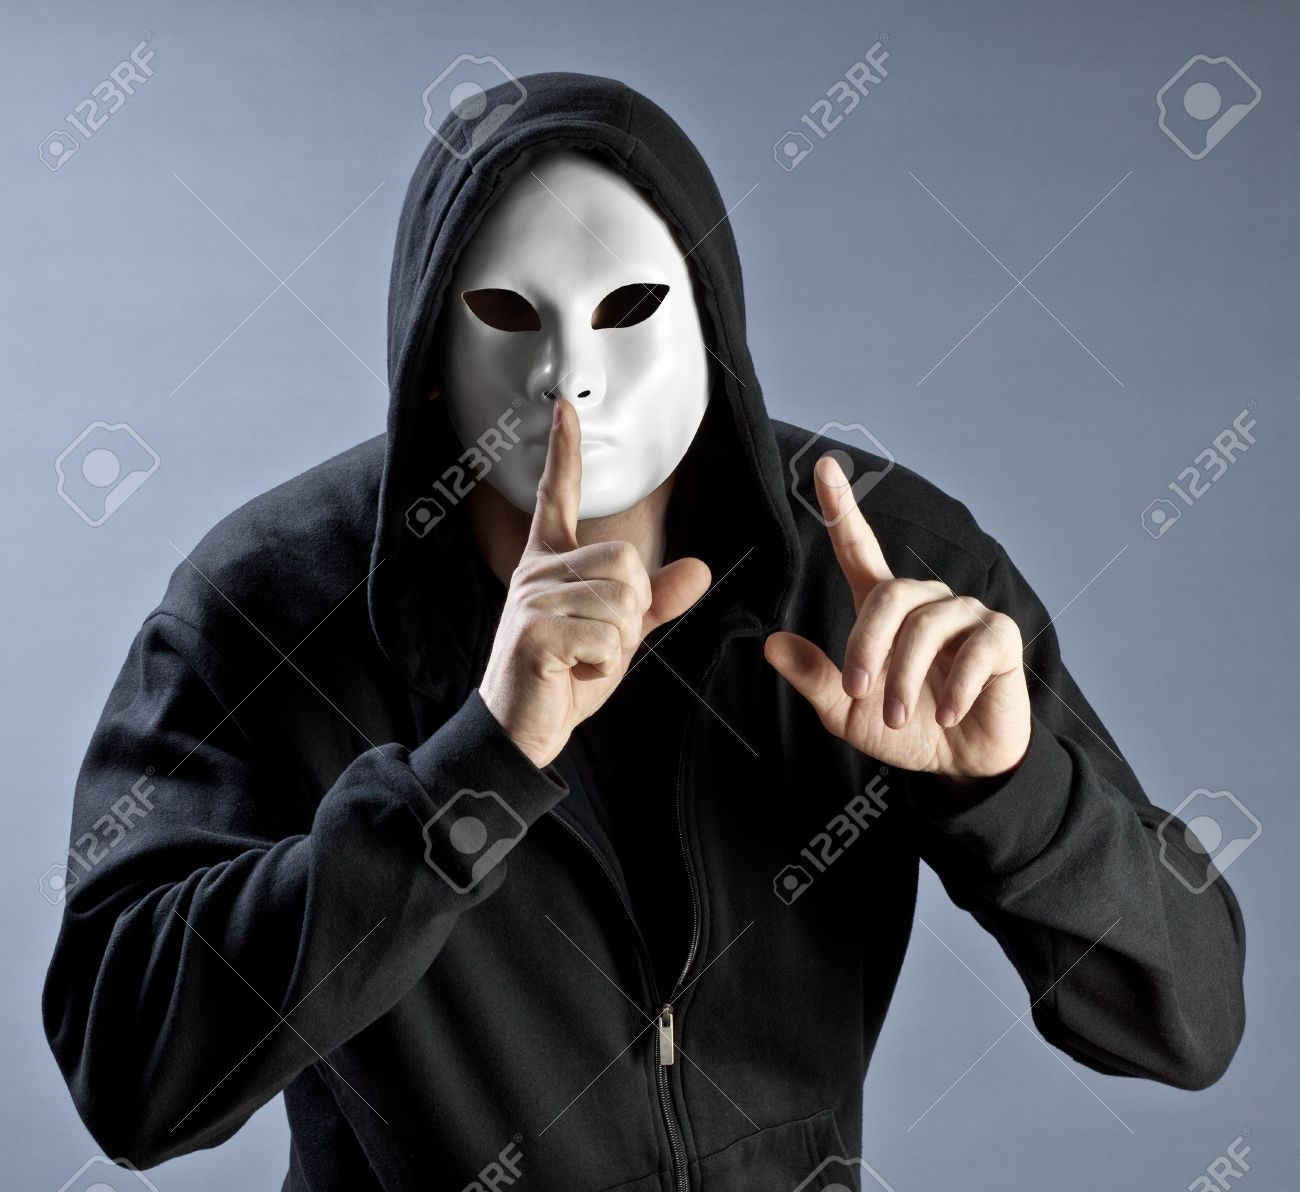 The person in a mask calls for silence Stock Photo - 12384667